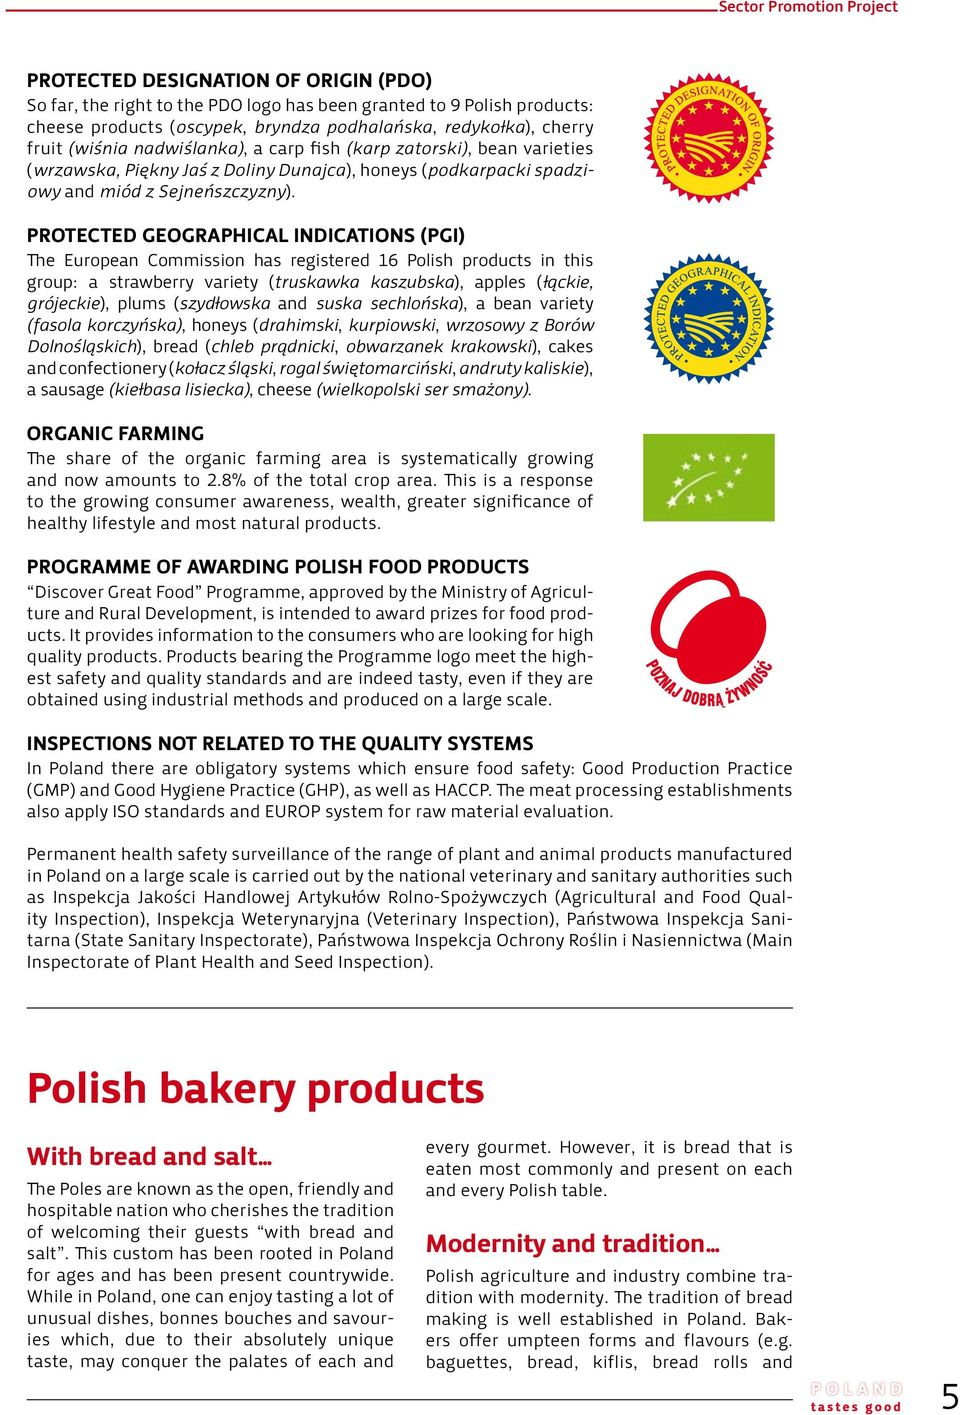 PROTECTED GEOGRAPHICAL INDICATIONS (PGI) The European Commission has registered 16 Polish products in this group: a strawberry variety (truskawka kaszubska), apples (łąckie, grójeckie), plums